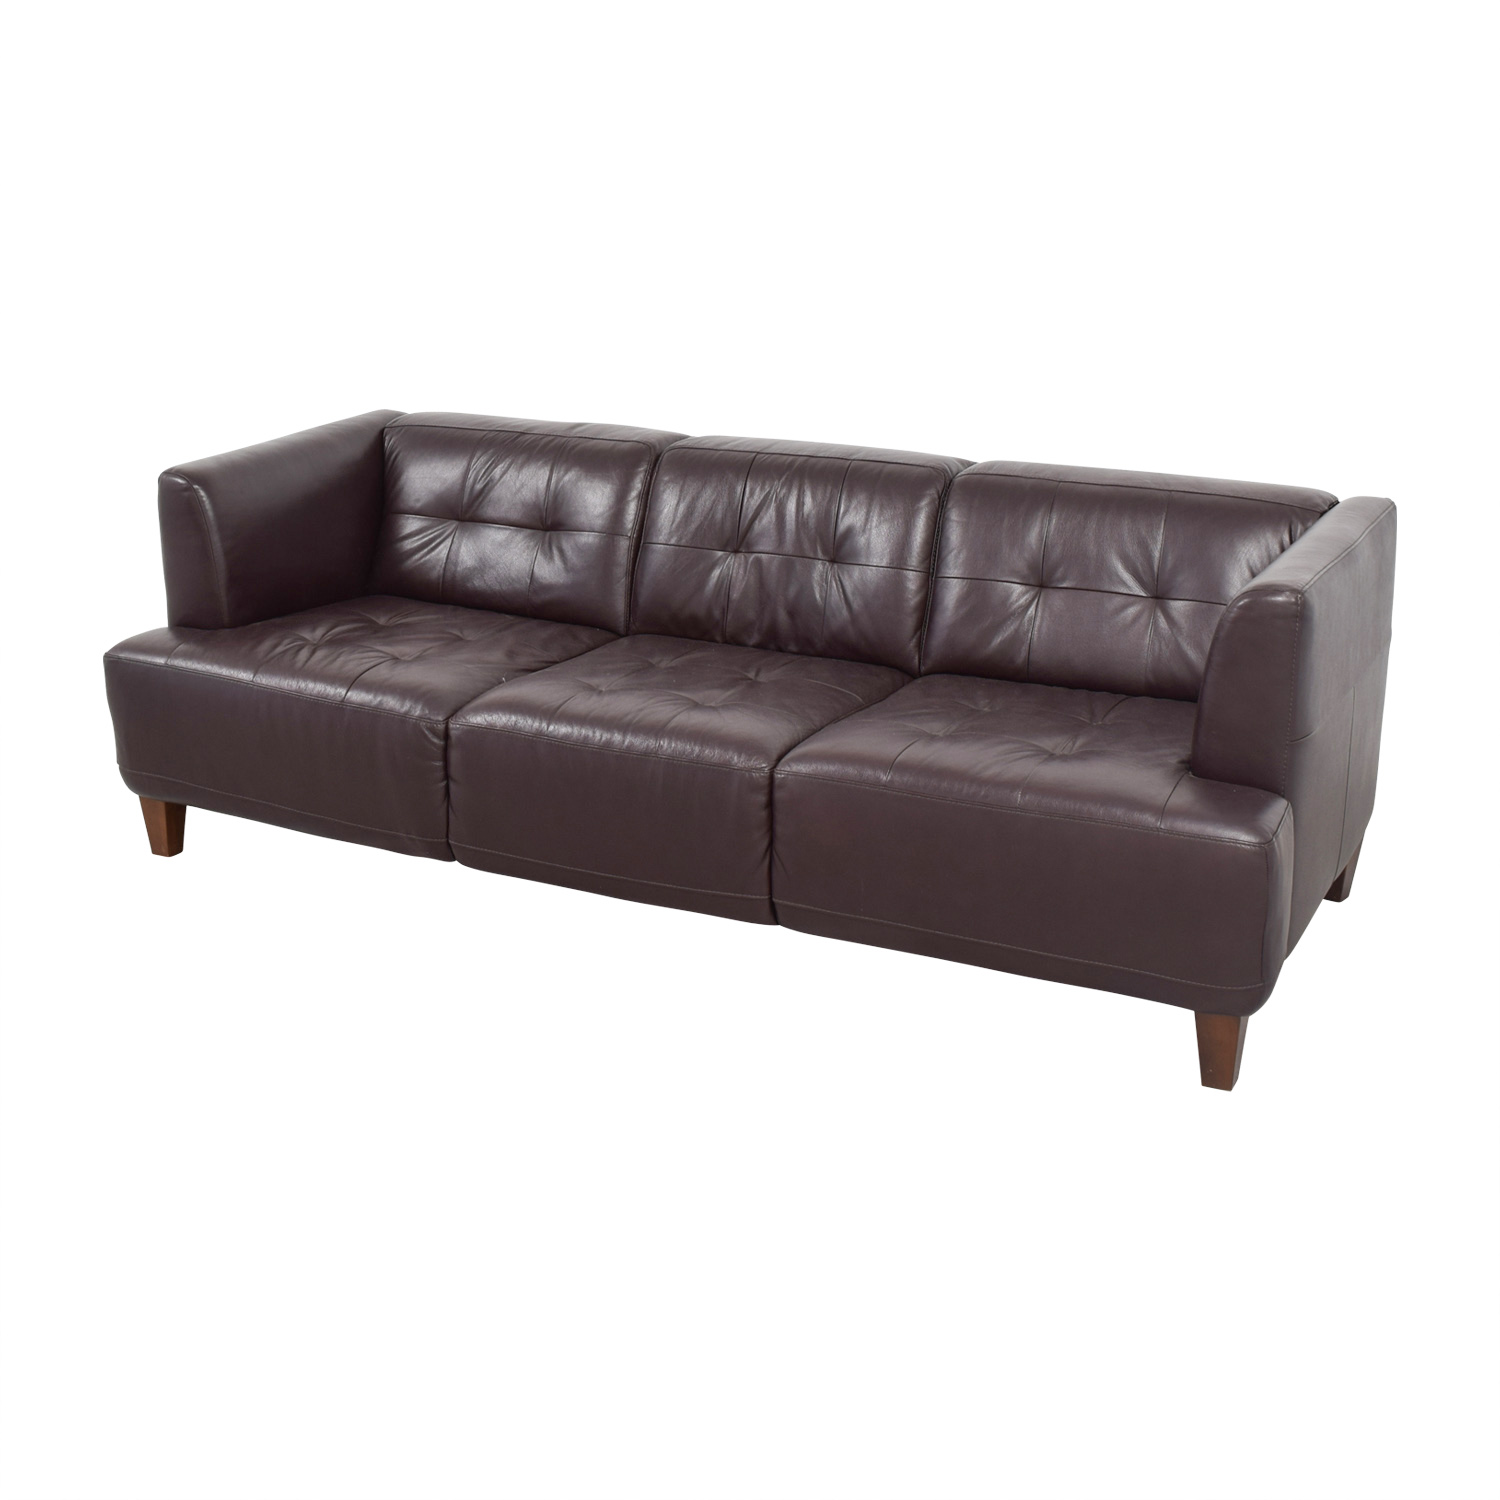 Macys Macys Brown Tufted Leather Couch second hand